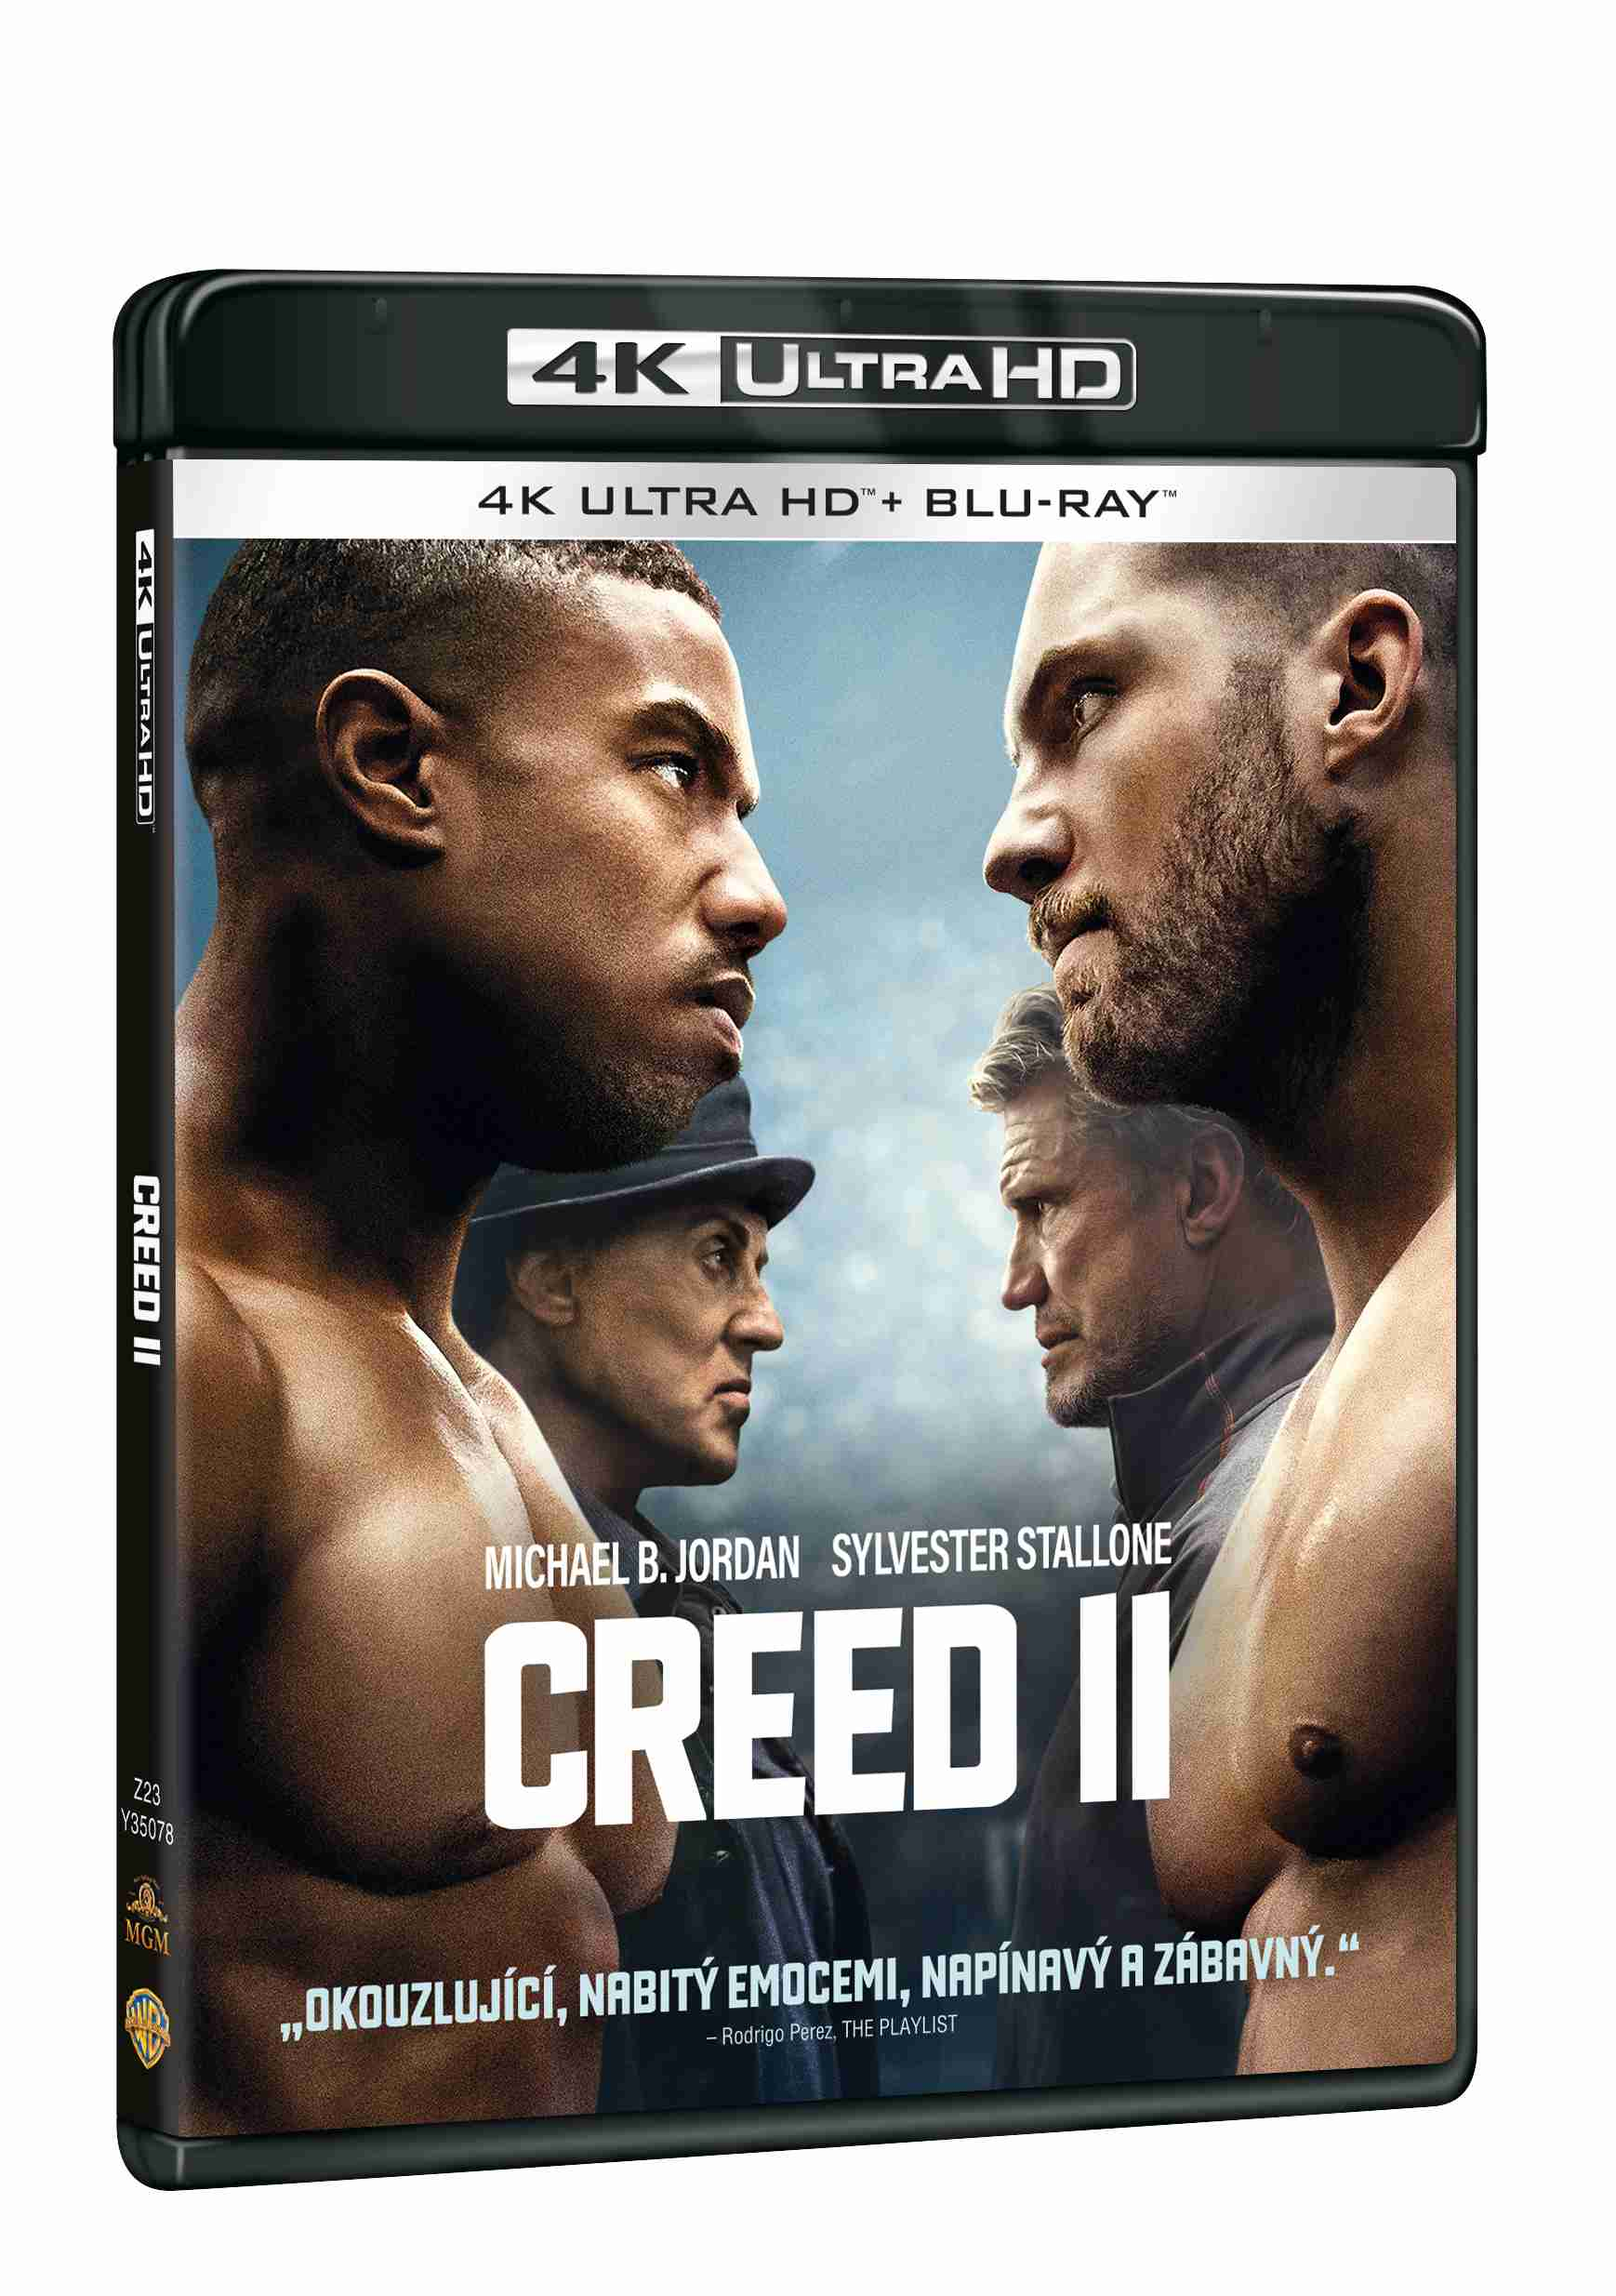 Creed II (4K ULTRA HD) - UHD Blu-ray + Blu-ray (2 BD)